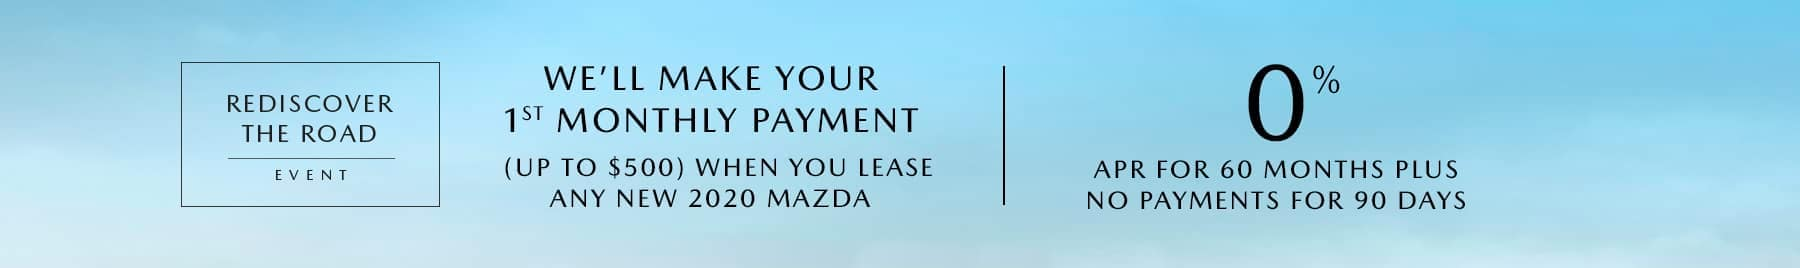 Rediscover the road event. We'll make your first monthly payments (up to $500) when you lease any new 2020 Mazda. Zero percent APR for 60 months, plus no payments for 90 days.